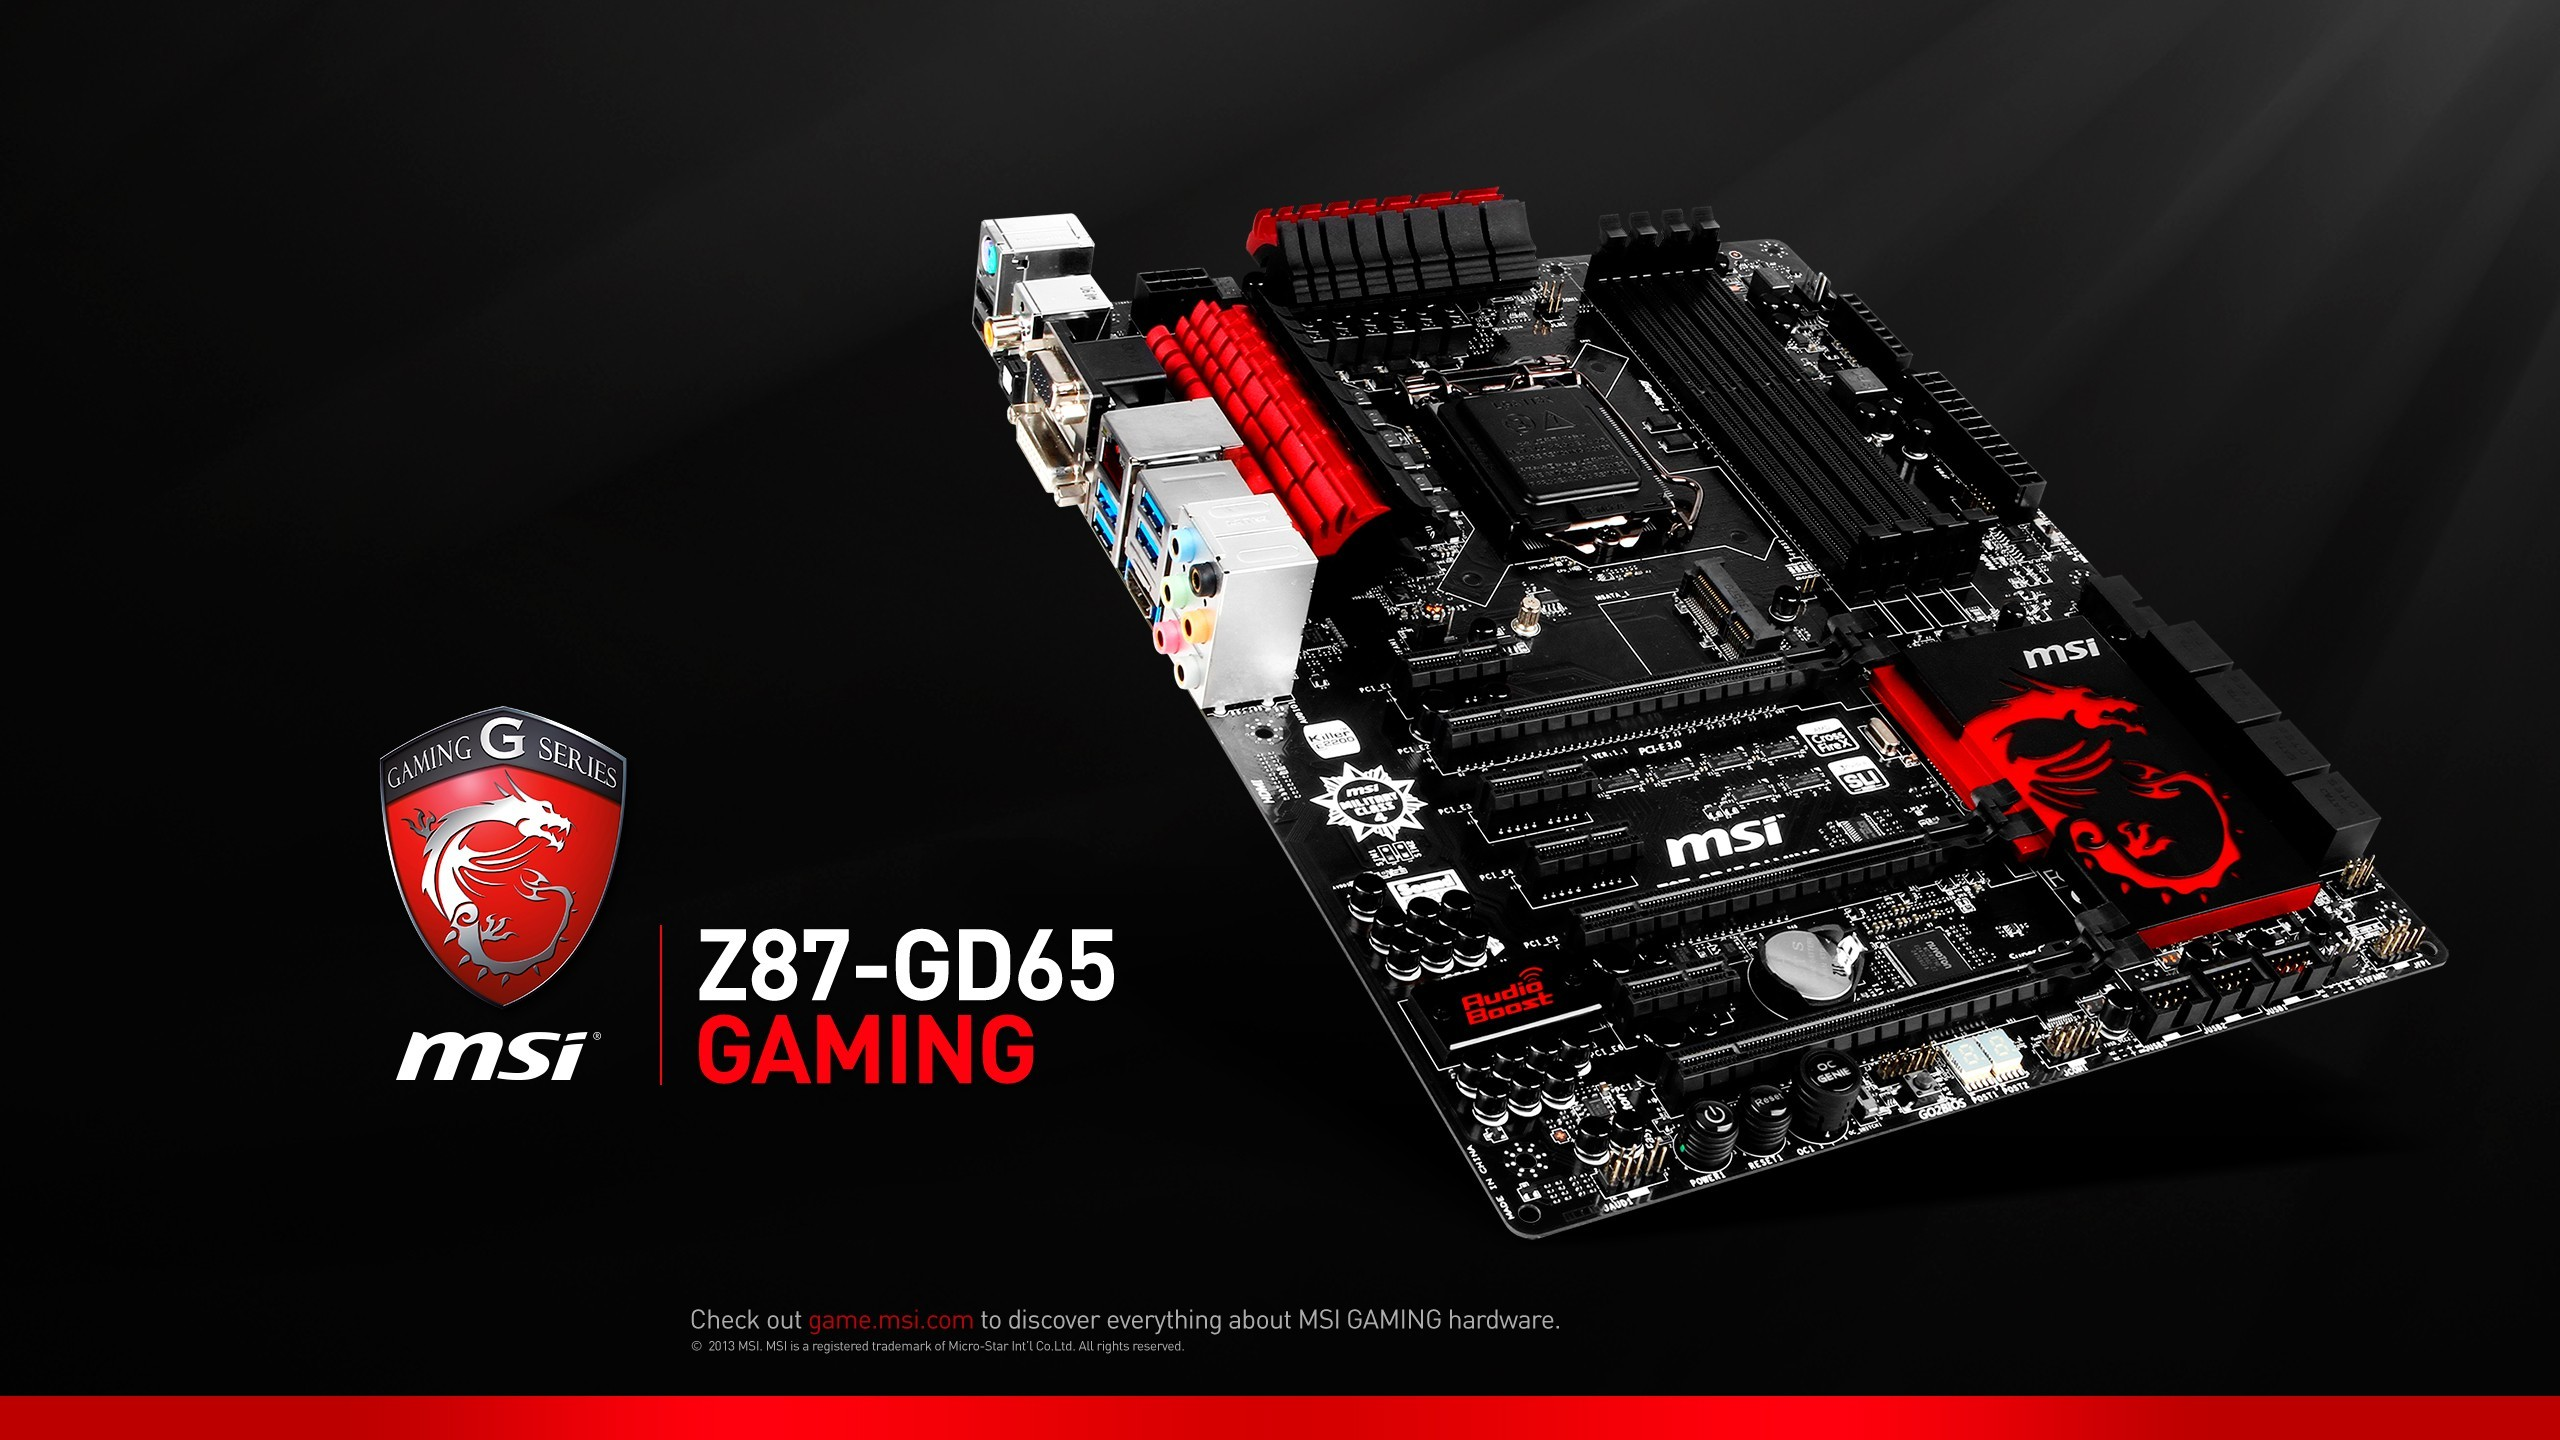 Msi g series wallpaper notebookreview - 1920x1080 For The 5 Next Ones I Tried Something Really Different More In An Advertising Campaign Way Some Minimalist Looking Wallpapers Trying To Focus